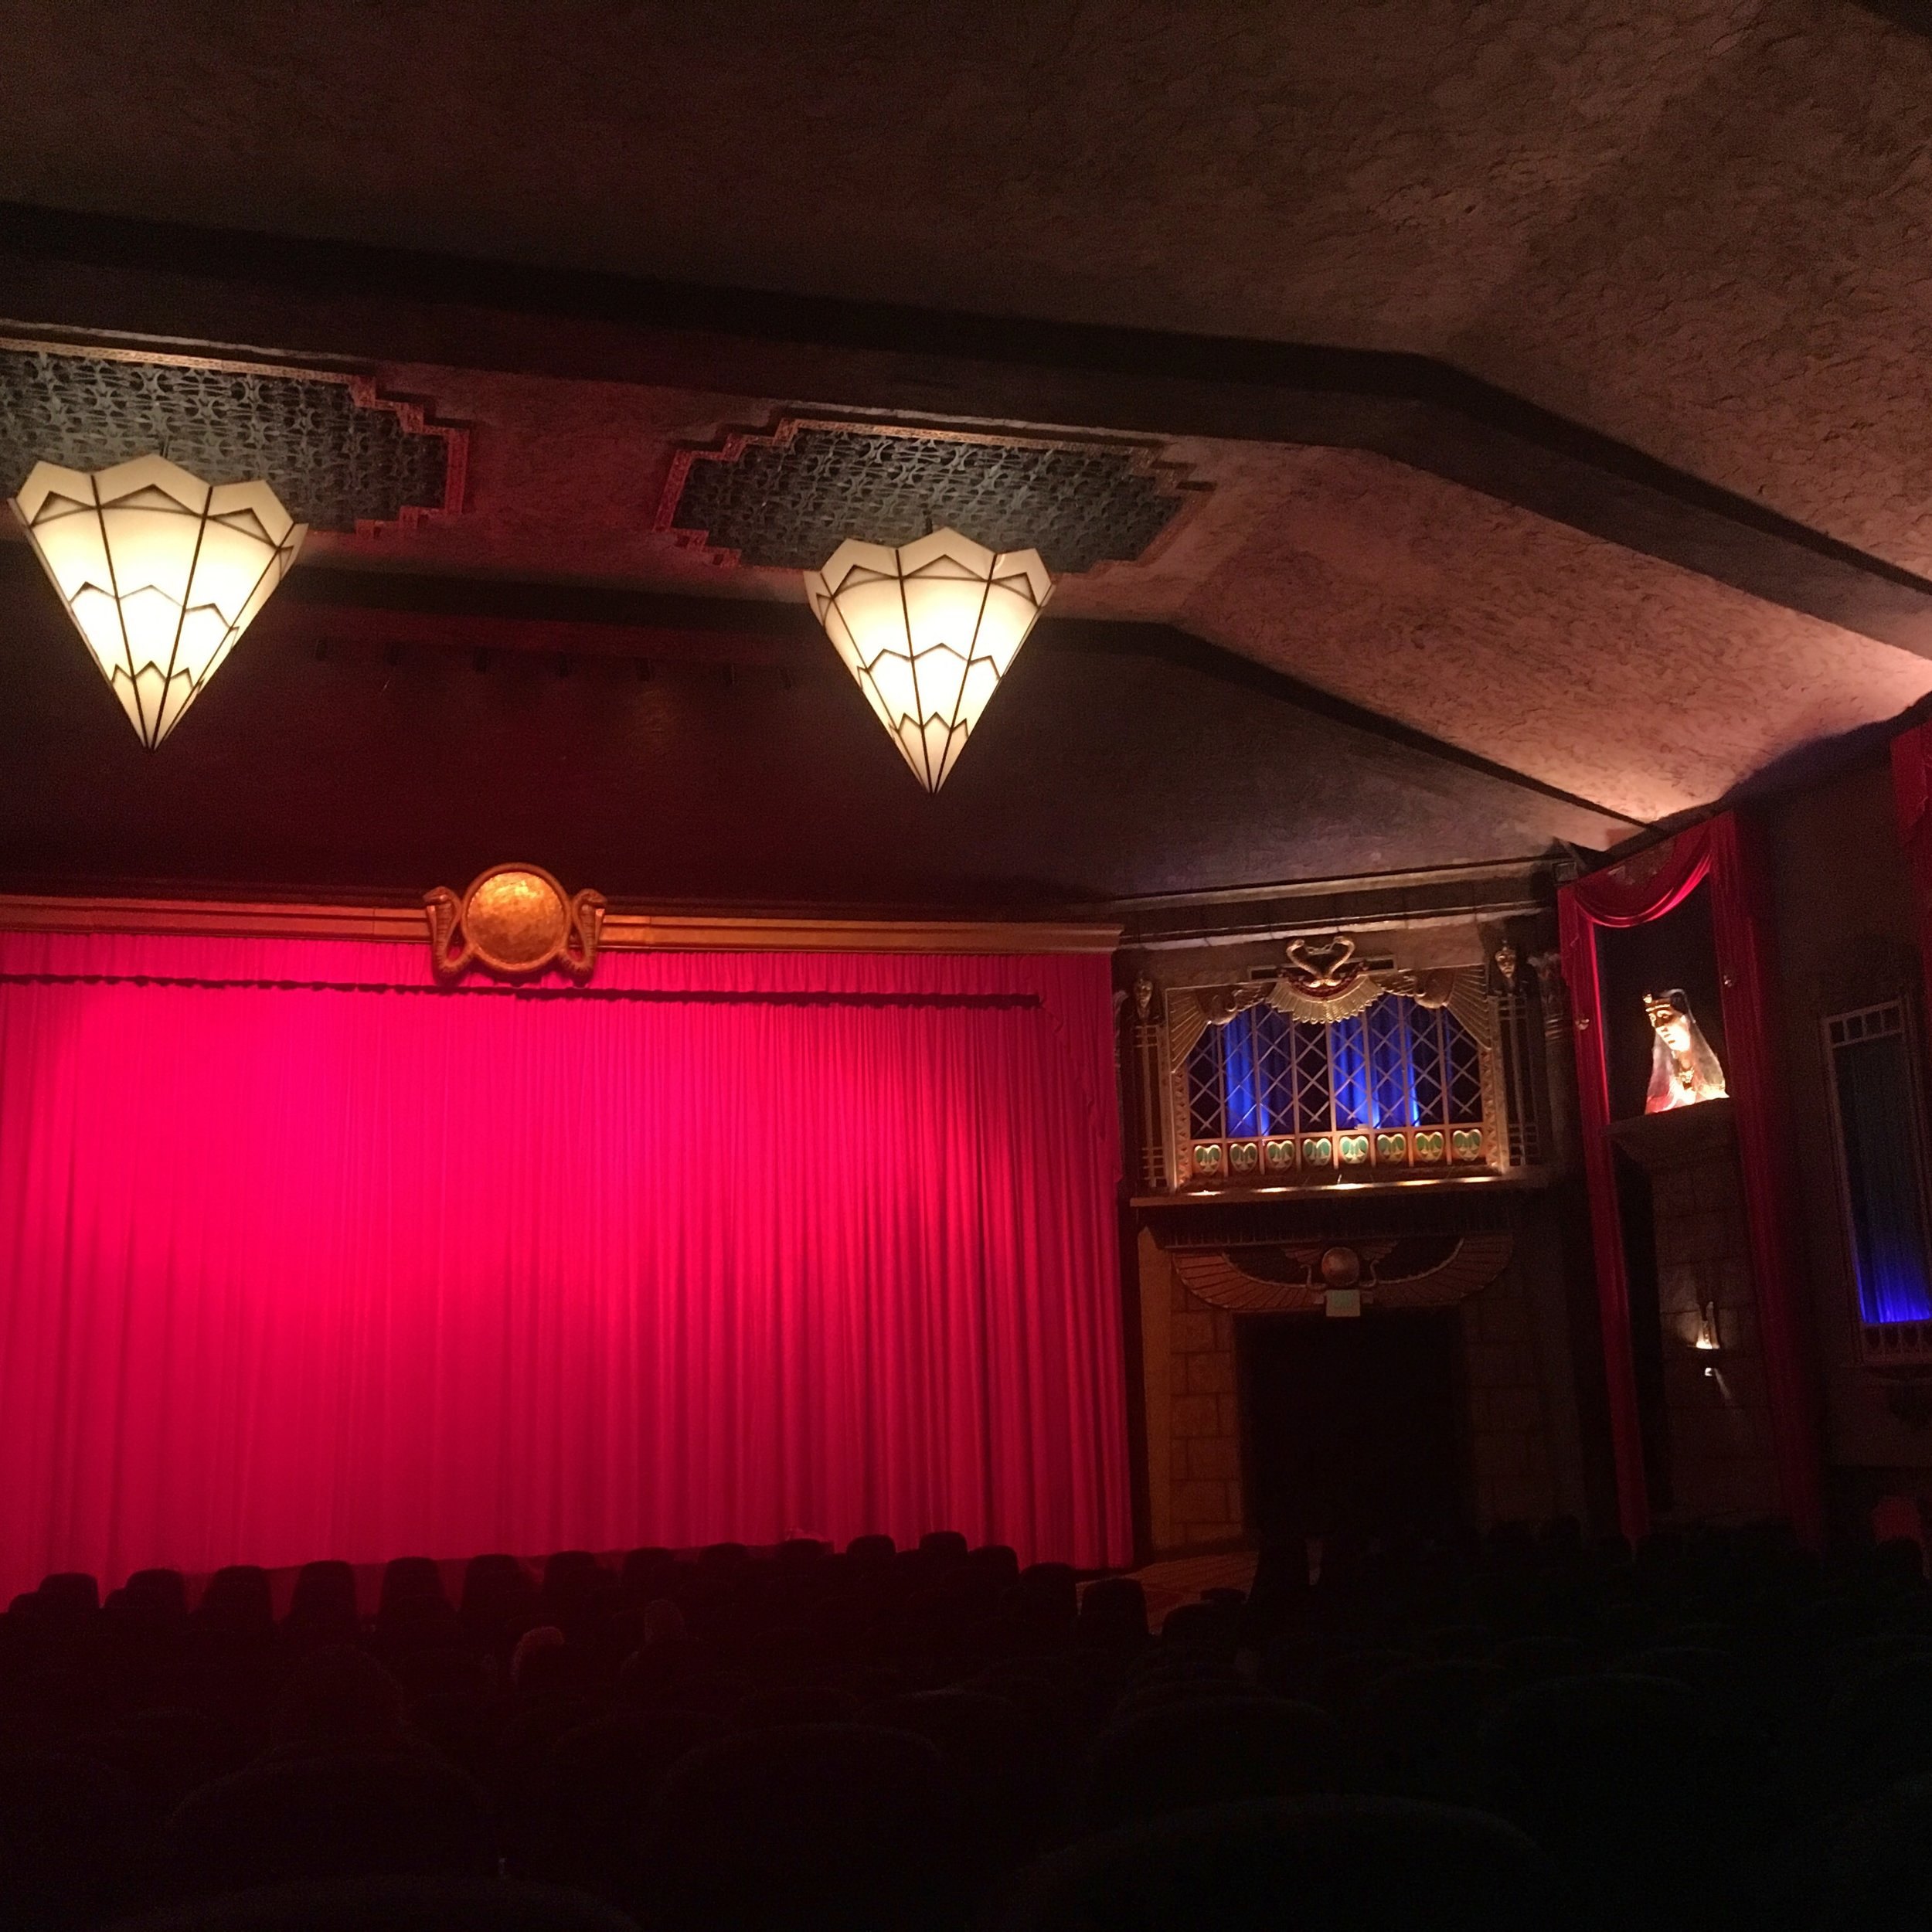 Art Deco movie theater red curtain with chandeliers and seats.